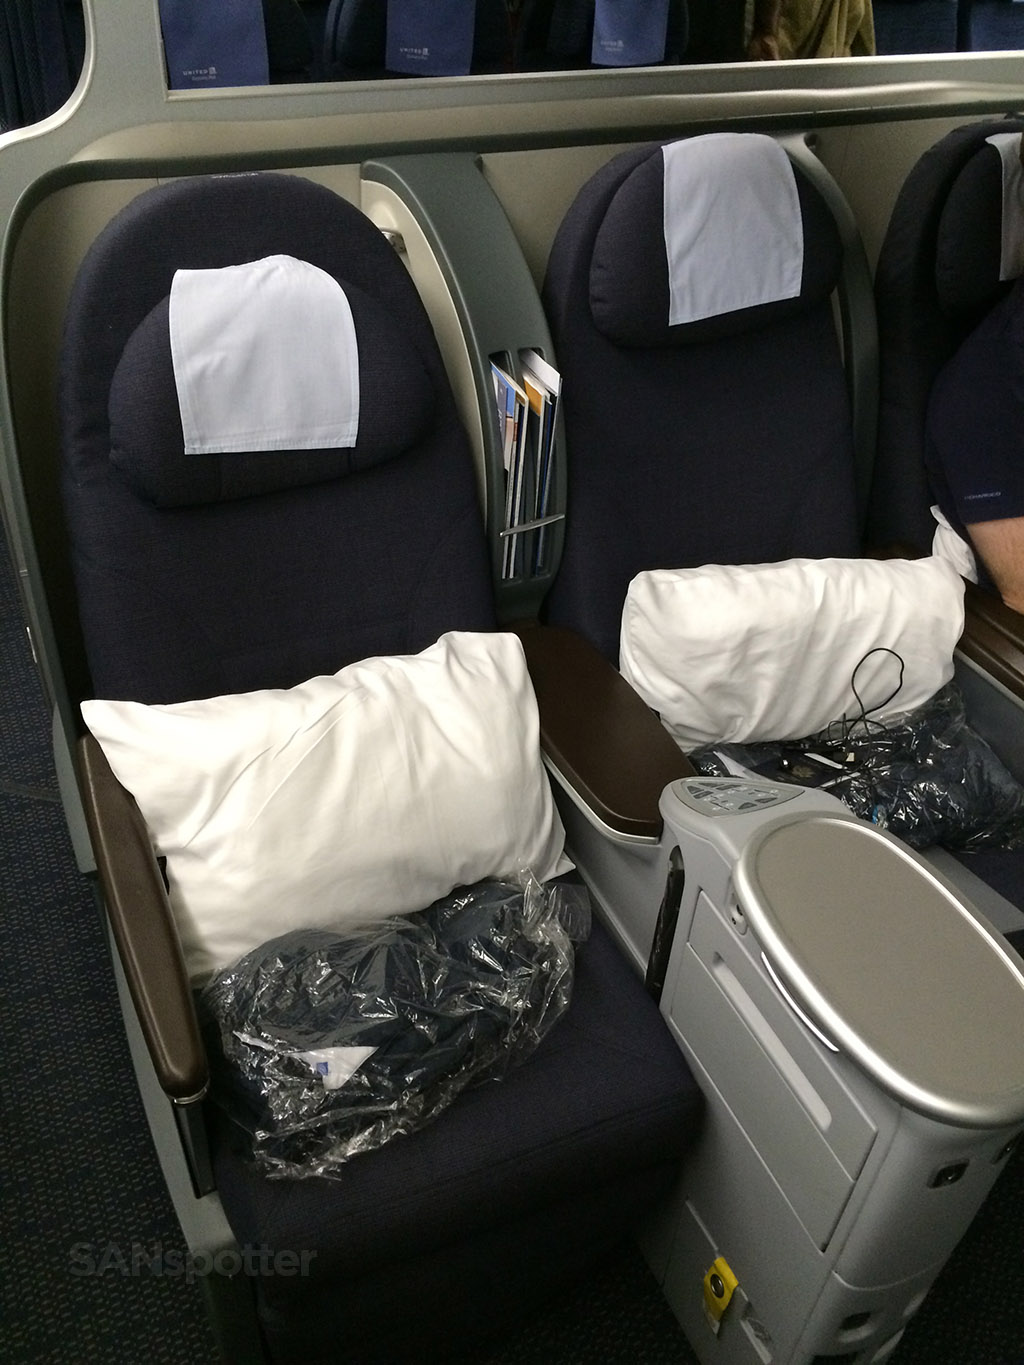 united airlines 777-200 BusinessFirst seat